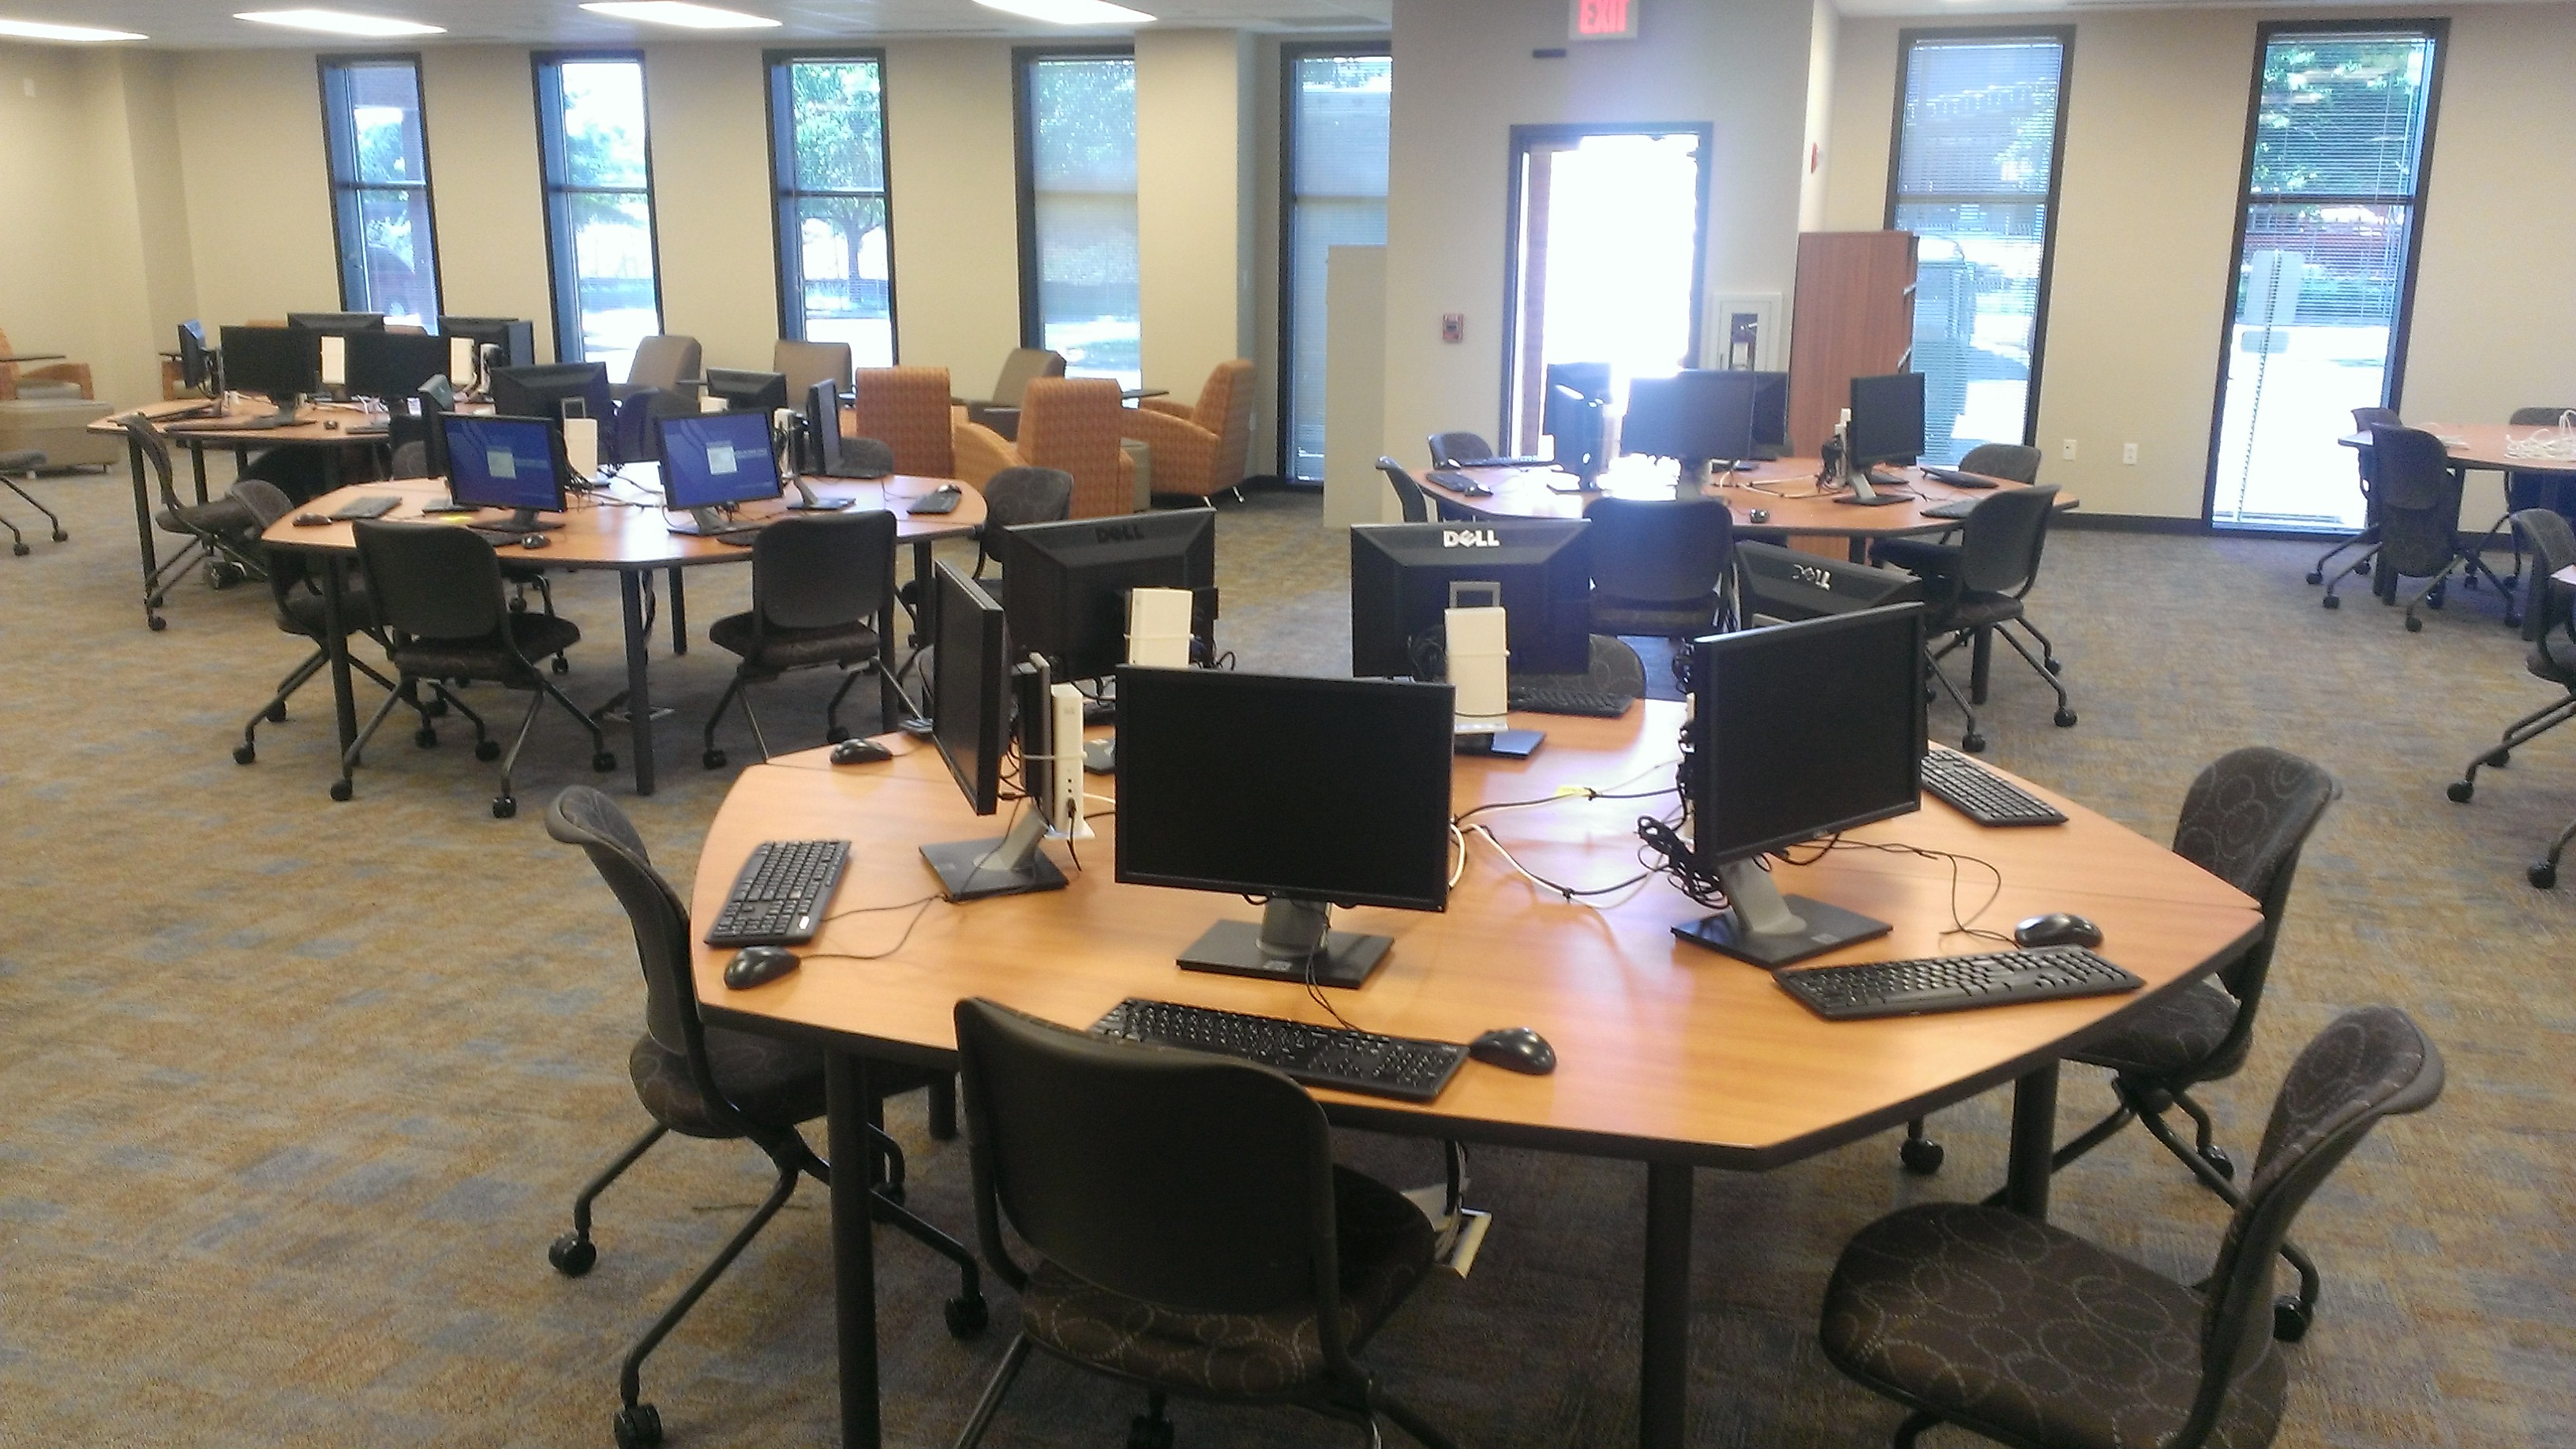 VSCC Learning Commons By Kelly Reaves At Coroflotcom